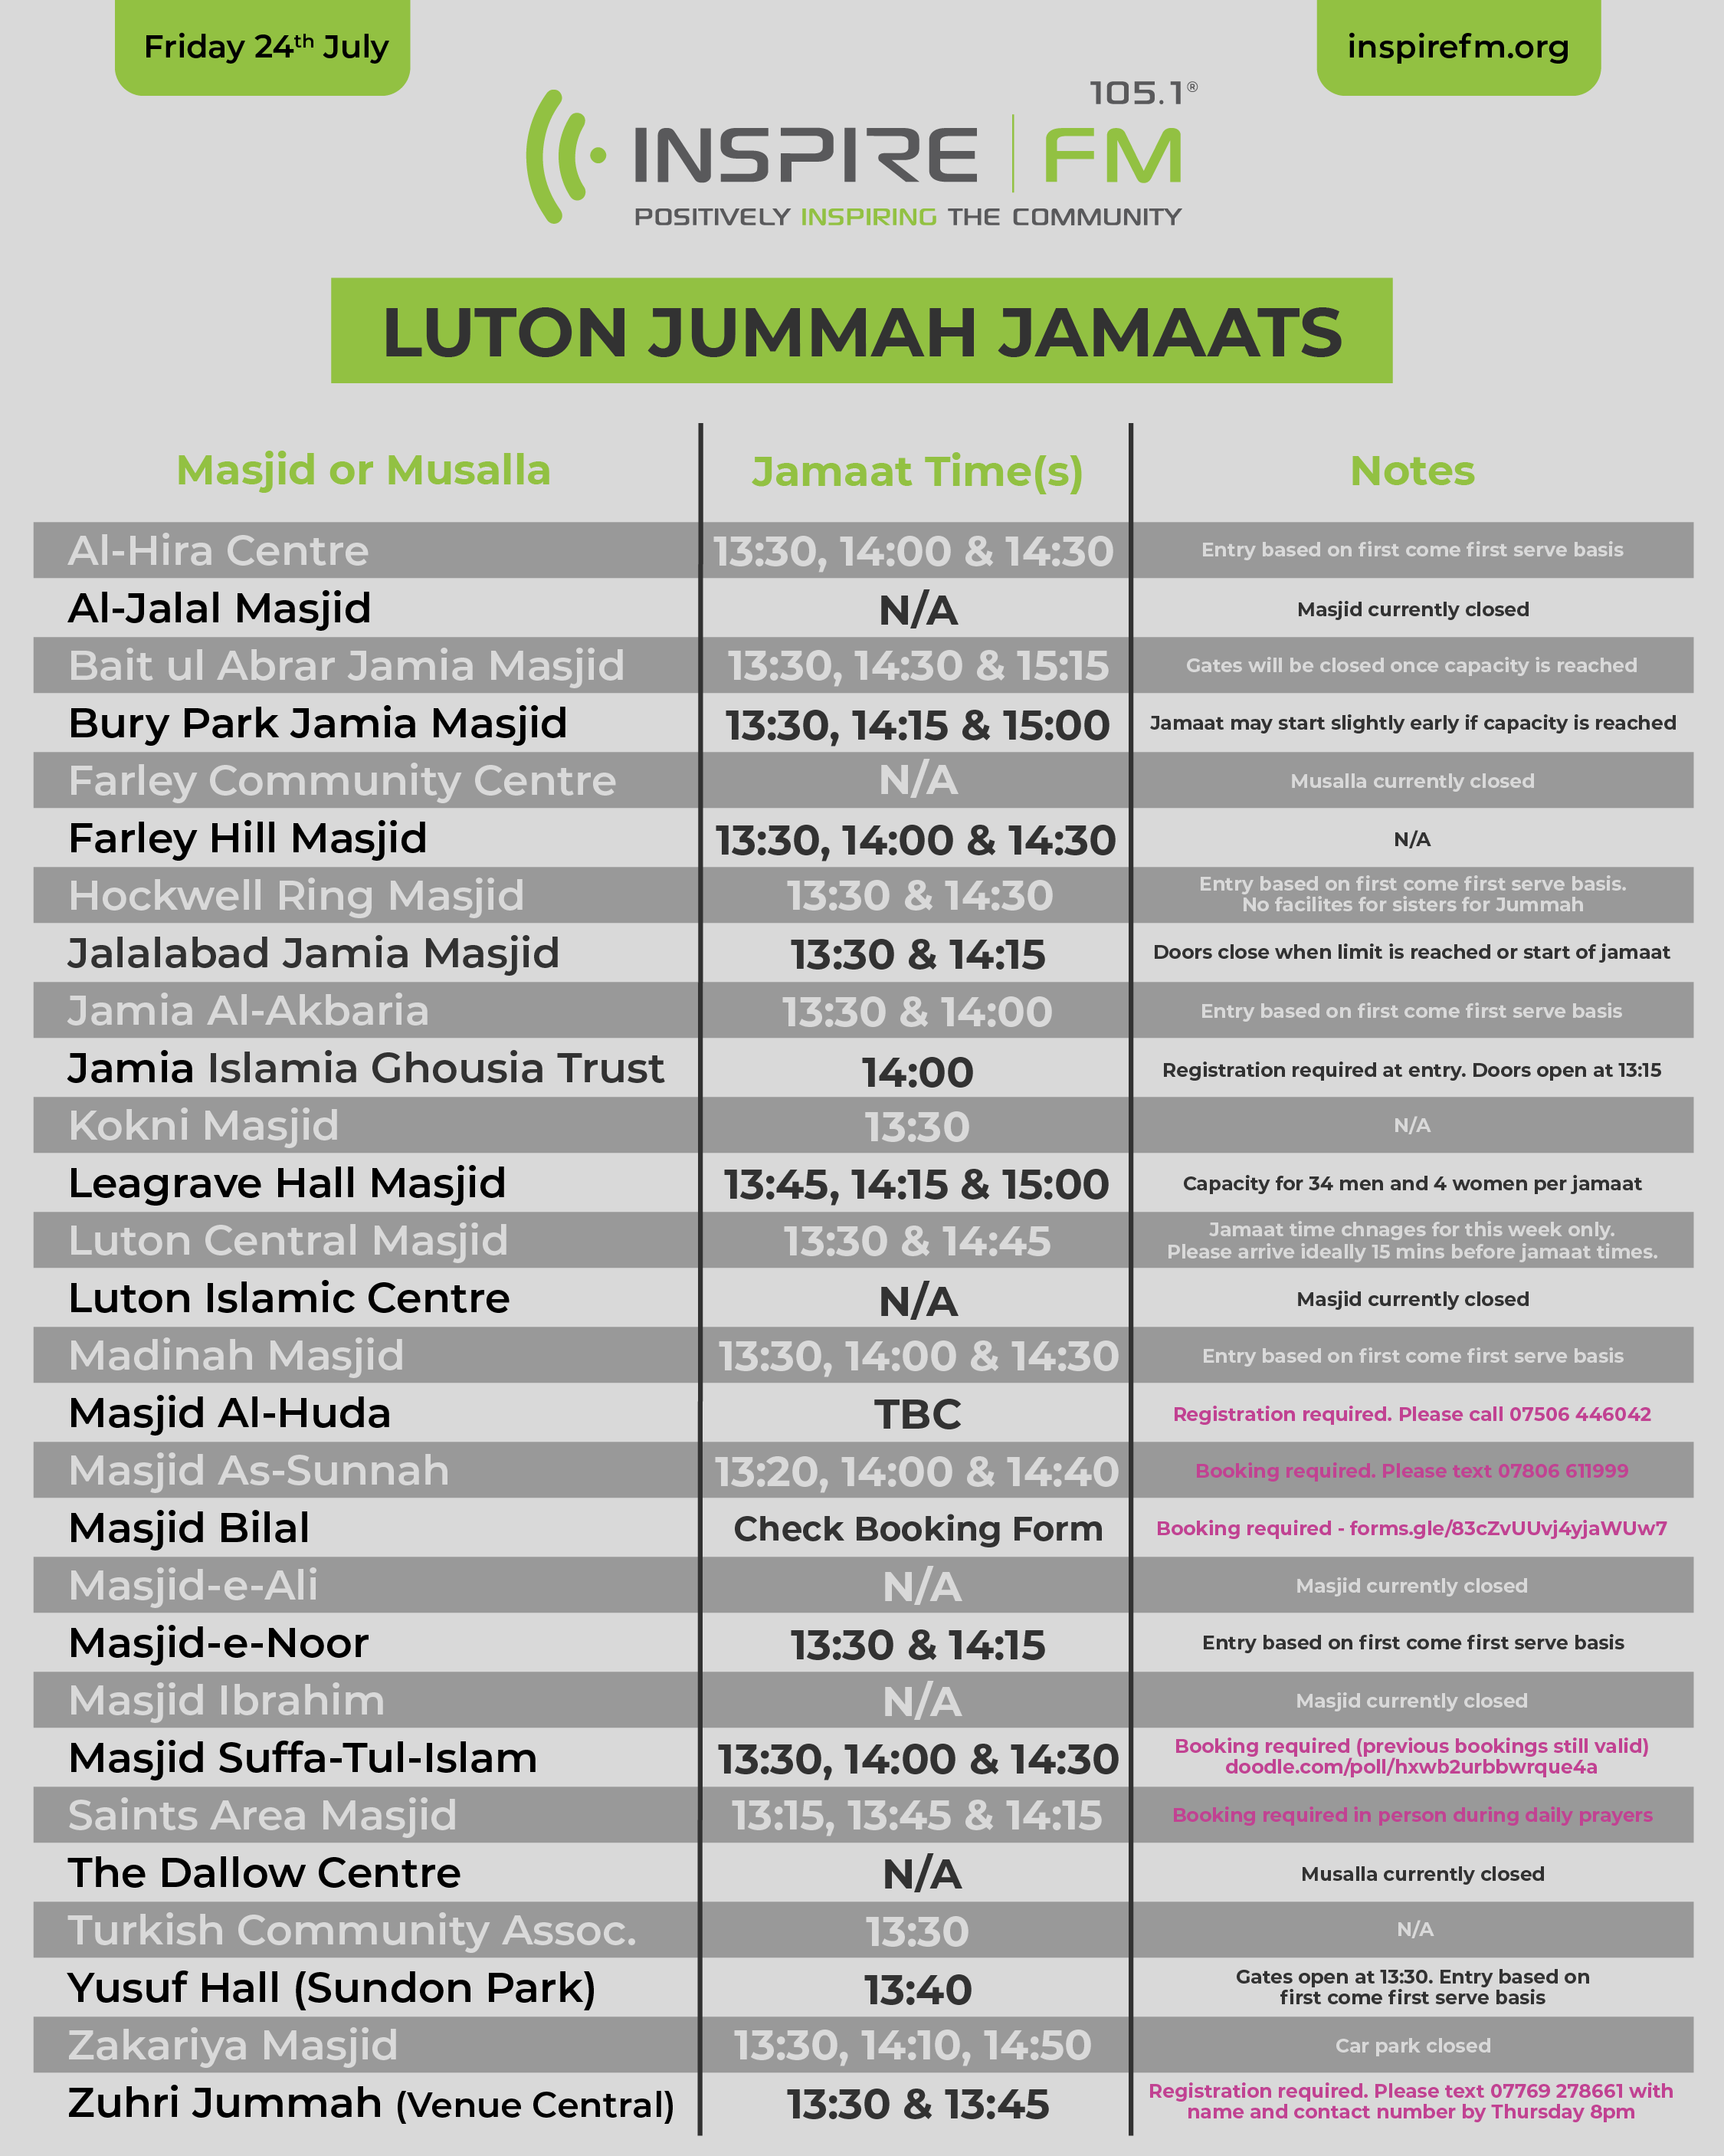 Jummah jamaats. Al-Hira Centre at 1:30, 2 and 2:30pm. Al-Jalal masjid currently closed. Baitul Abrar Jamia Masjid at 1:30, 2:30 and 3:15pm. Bury Park Jamia Masjid at 1:20, 2:15 and 3pm. Farley Community centre currently closed. Farley Hill Masjid at 1:30, 2 and 2:30pm. Hockwell ring masjid at 1:30 and 2:30pm. Jalalabad Jamia Masjid at 1:30 and 2:15pm. Jamia al-Akbari at 1:30 and 2pm. Jamia Islamia Ghousia Trust at 2pm. Kokni Masjid at 1:30pm. Leagrave Hall Masjid at 1:45, 2:15 and 3pm. Luton Central Masjid at 1:30, & 2:45. Madinah masjid at 1:30, 2 and 2:30pm. Masjod al-Huda TBC. Masjid as-Sunnah at 1:20, 2 and 2:40pm please text 07806 611999 to book. Masjid Bilal visit https://forms.gle/83cZvUUvj4yjaWUw7 to book. Masjid-e-Ali currently closed. Masjid-e-Noor 1:30 and 2:15pm. Masjid Ibrahim currently closed. Masjid Suffa-Tul-Islam at 1:30, 2 and 2:30pm booking requried on https://doodle.com/poll/hxwb2urbbwrque4a. Saints area masjid at 1:15, 1:45 and 2:15 booking required in person during prayers. The Dallow Centre currently closed. Turkish Community Association at 1:30pm. Yusuf Hall at 1:25, 1:45 and 2pm. Zakariya Masjid at 1:30, 2:10, 2:50pm. Zuhri Jummah at Venue Central at 1:30 and 1:45 booking required text 07769 278661